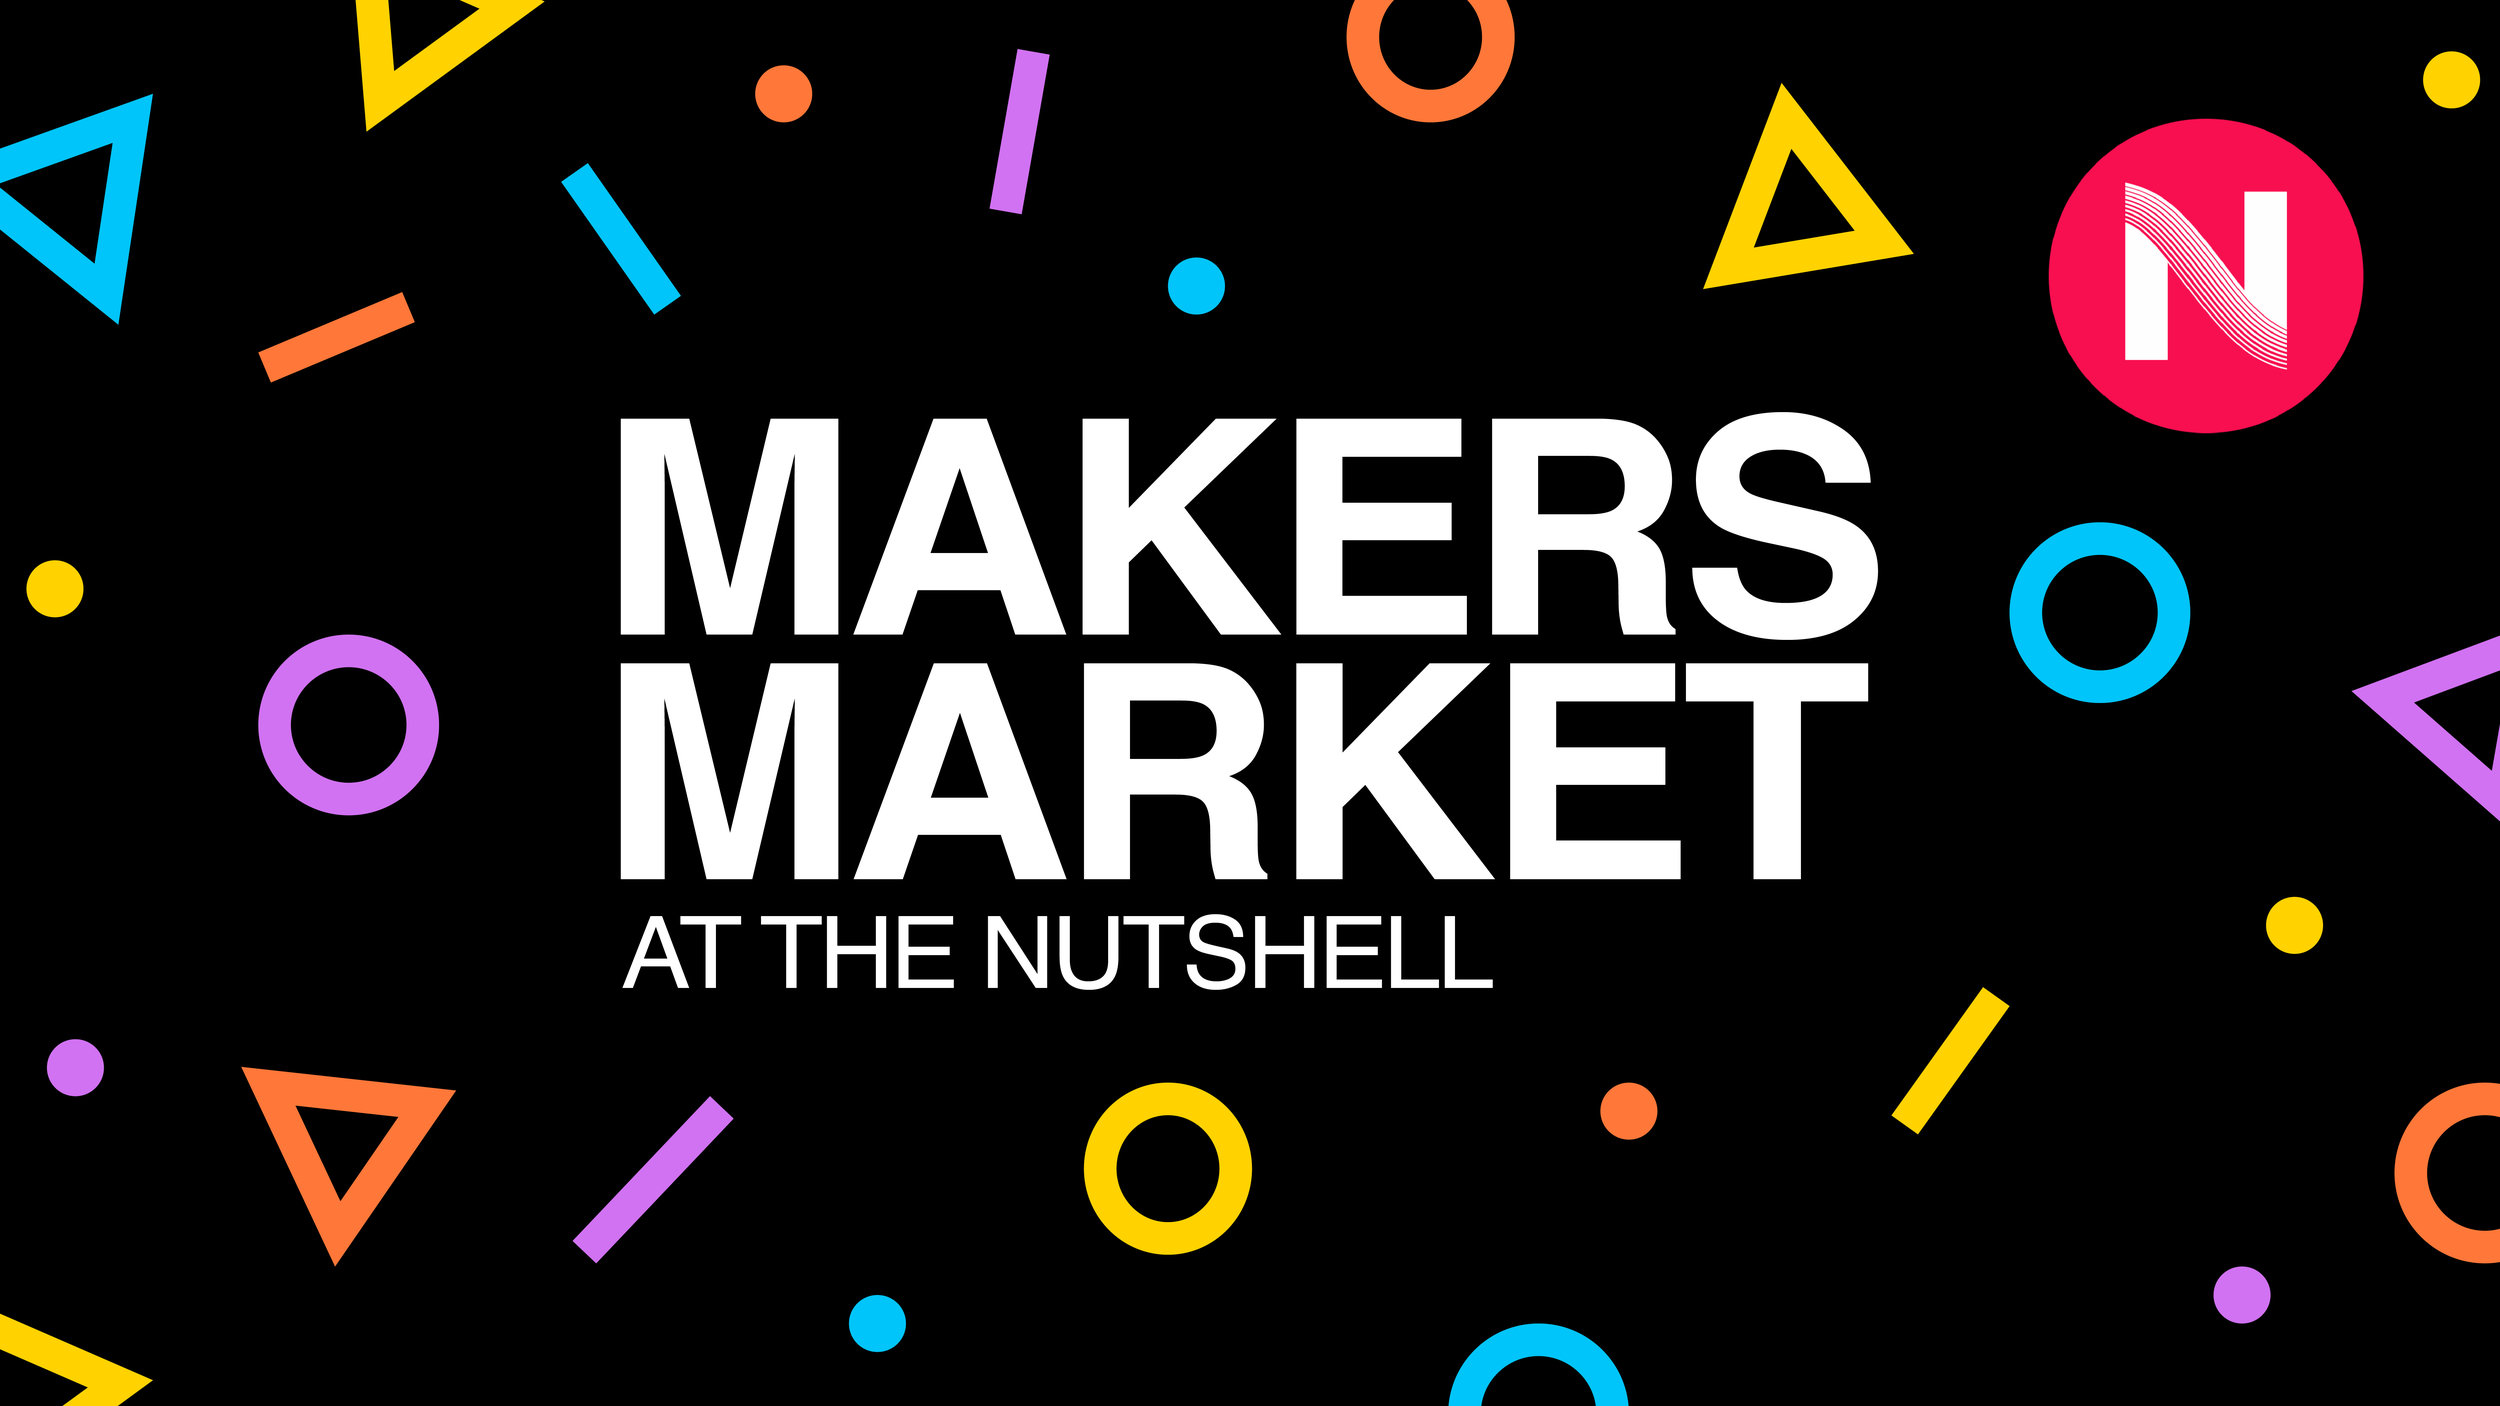 The Nutshell Winchester Makers Market